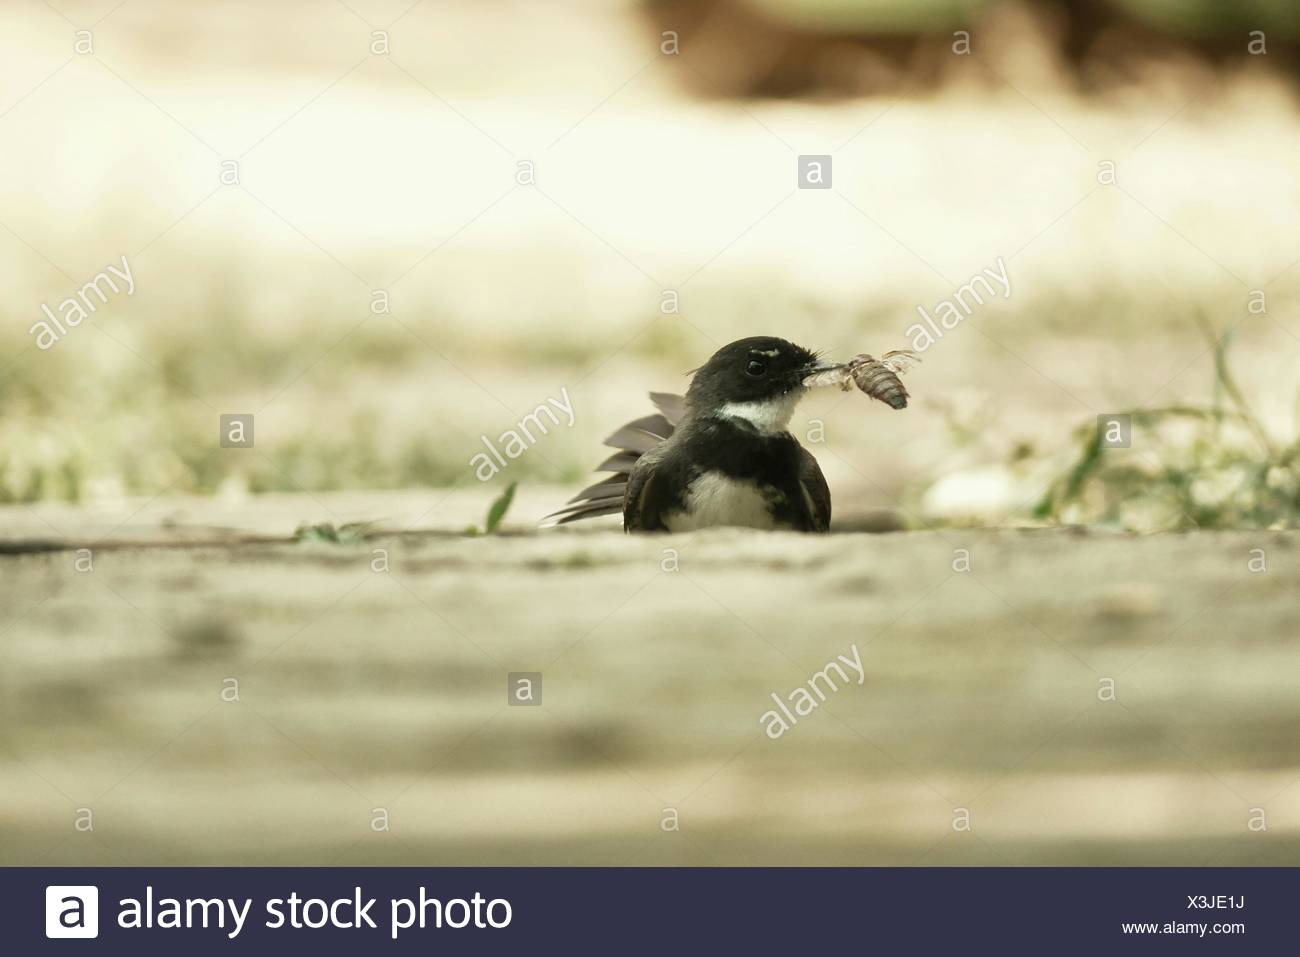 Surface Level Of Bird Hunted Insect On Field - Stock Image